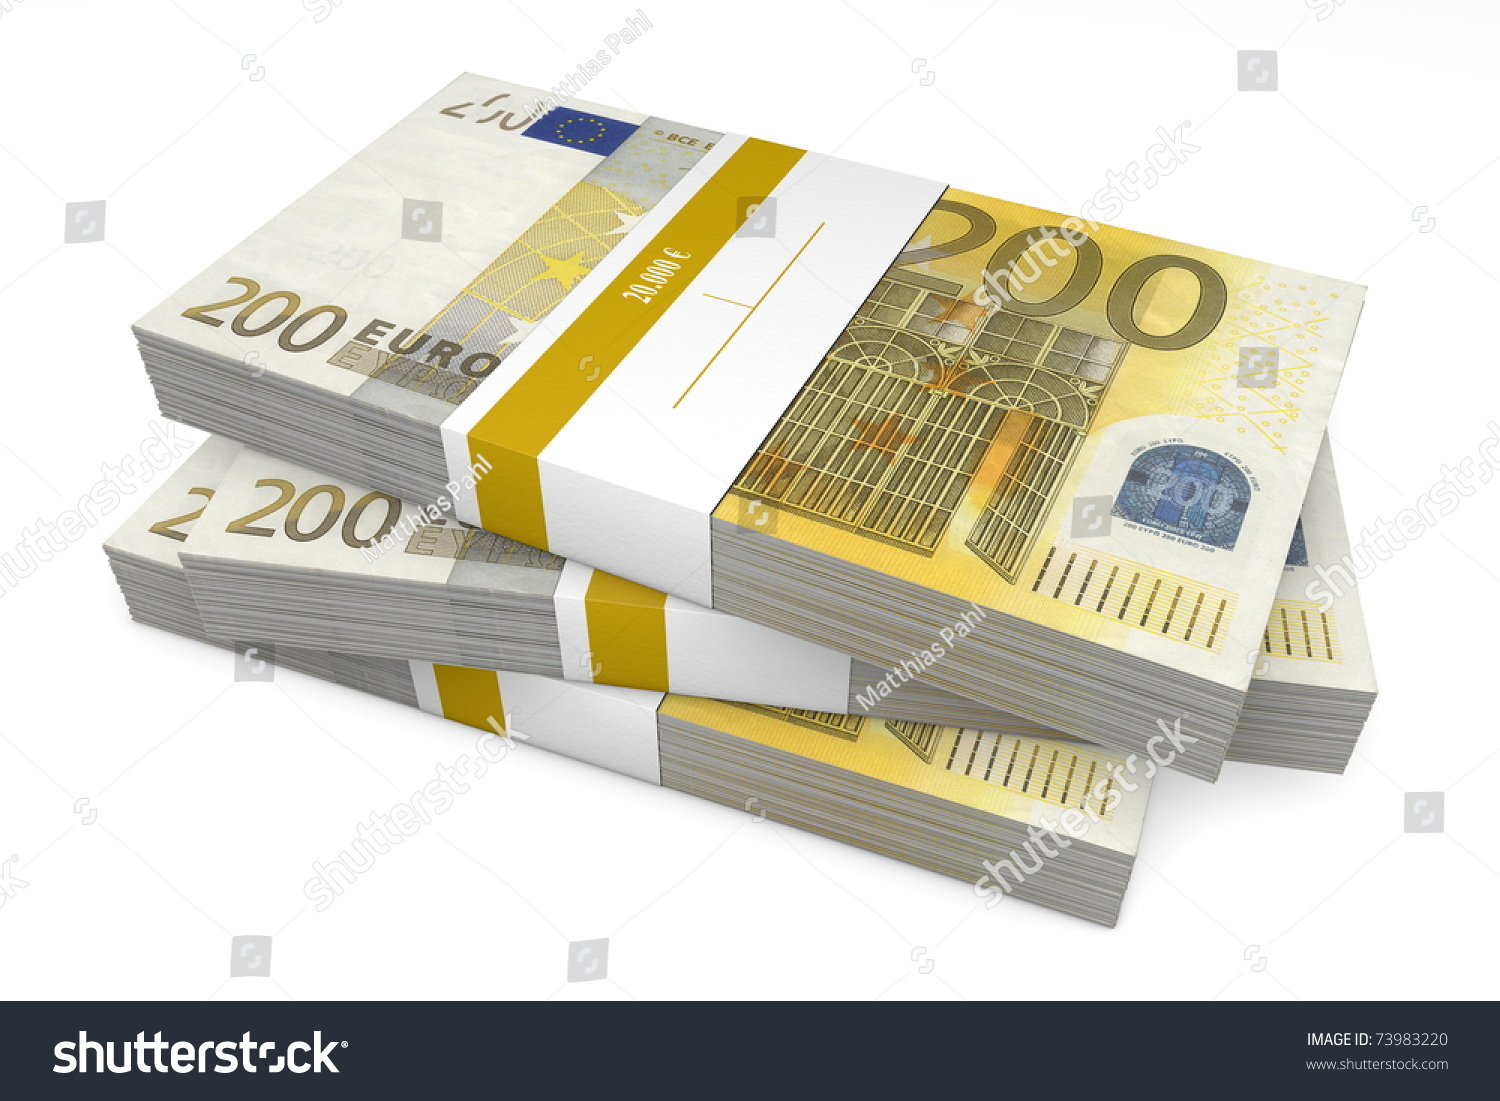 three packet 200 euro notes bank stock illustration. Black Bedroom Furniture Sets. Home Design Ideas